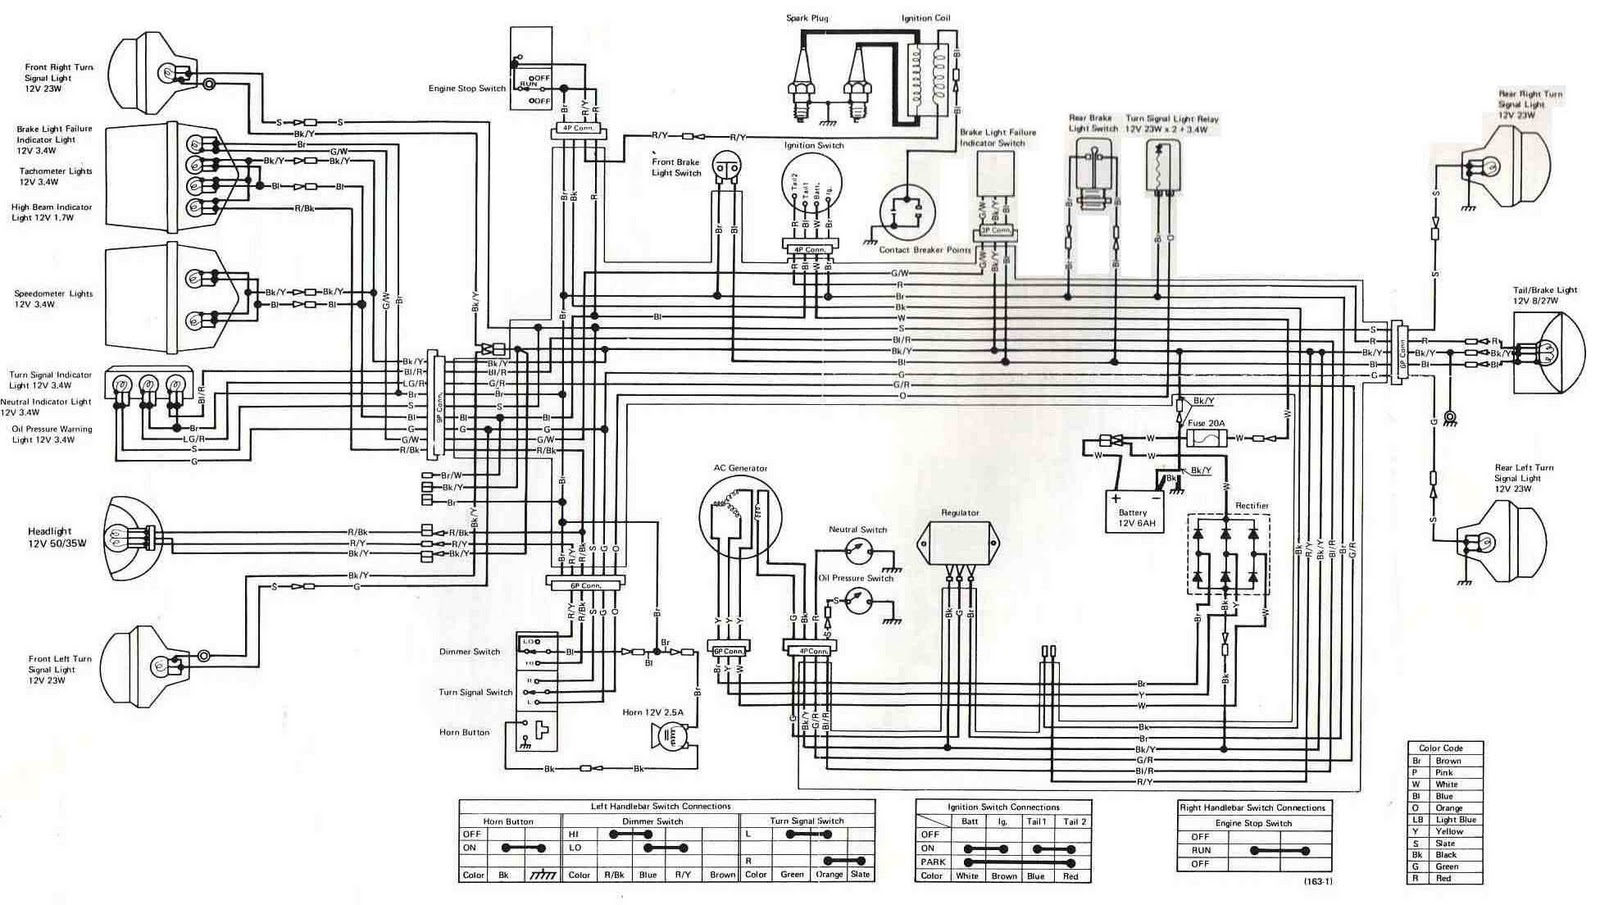 Kawasaki+KZ400+1975+Electrical+Wiring+Diagram kawasaki wiring diagram free toyota wiring diagrams \u2022 wiring kawasaki mule 600 wiring diagram at crackthecode.co